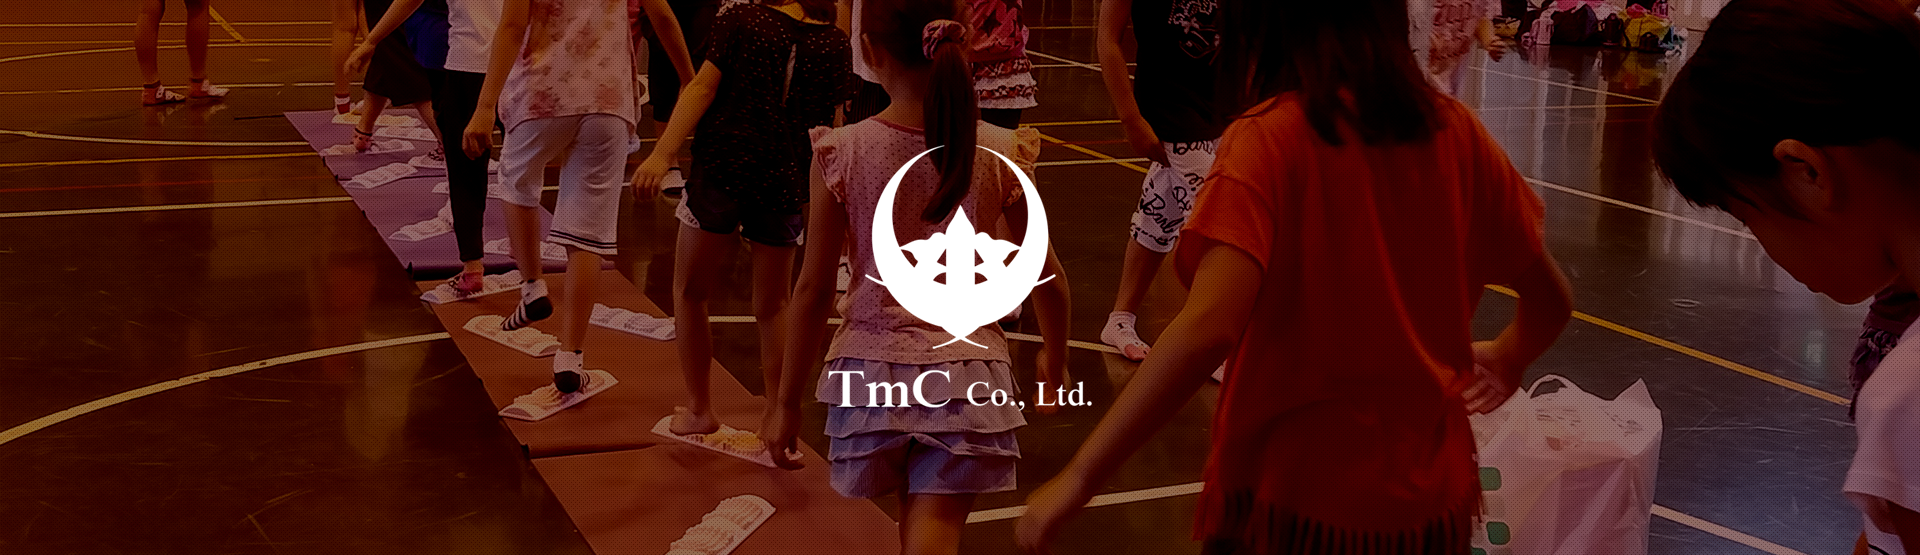 TmC Co., Ltd.